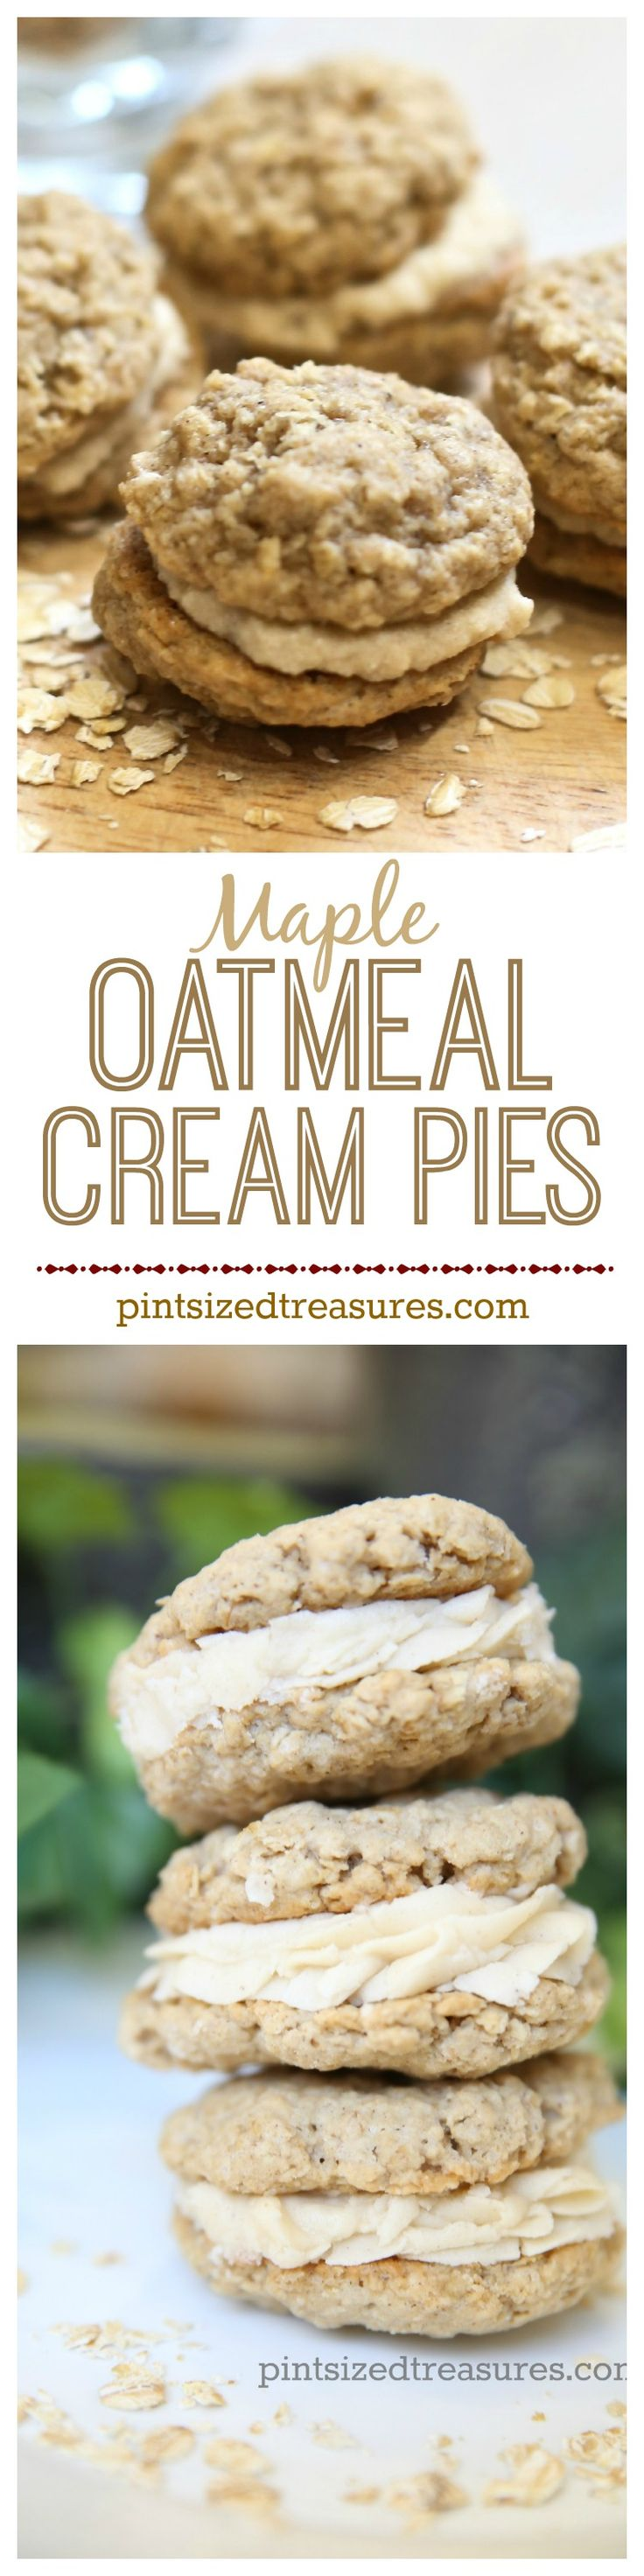 Maple Oatmeal cream pies taste ahh-mazing and include directions to make super-cute mini pies or the larger, original pie. Enjoy! @alicanwrite